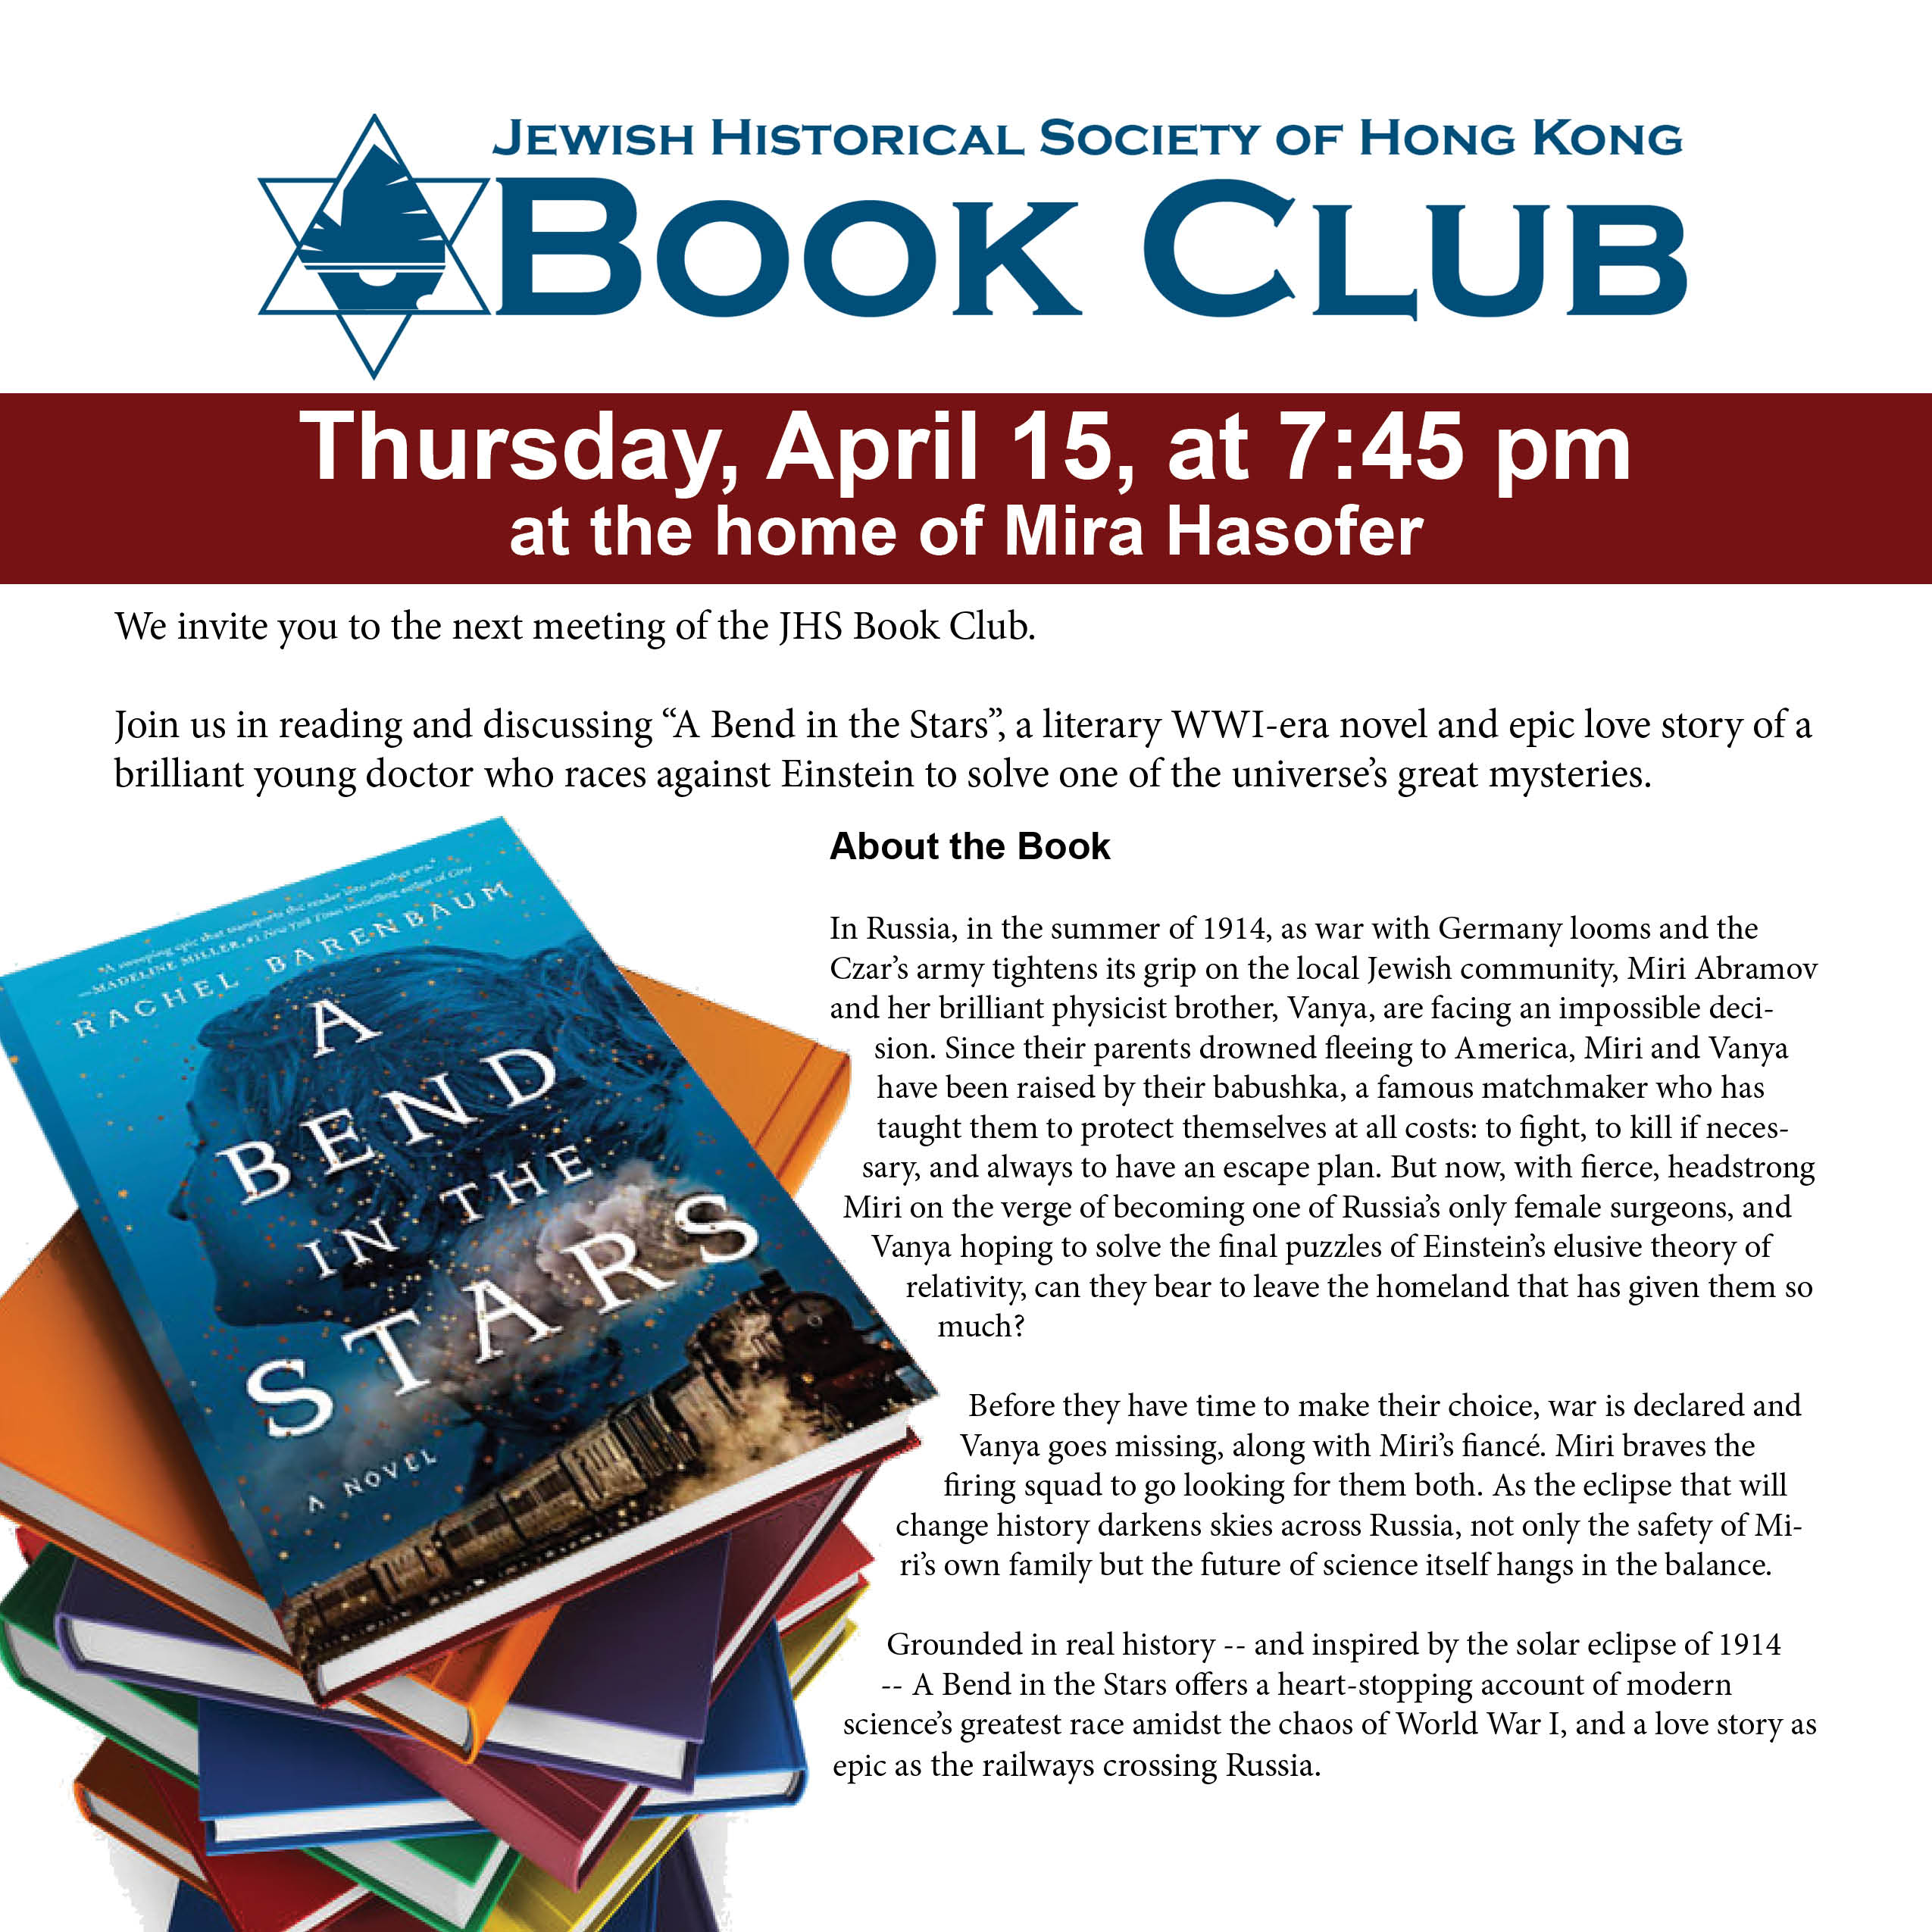 2021.04.15_Book Club Flyer_Bend in the Stars